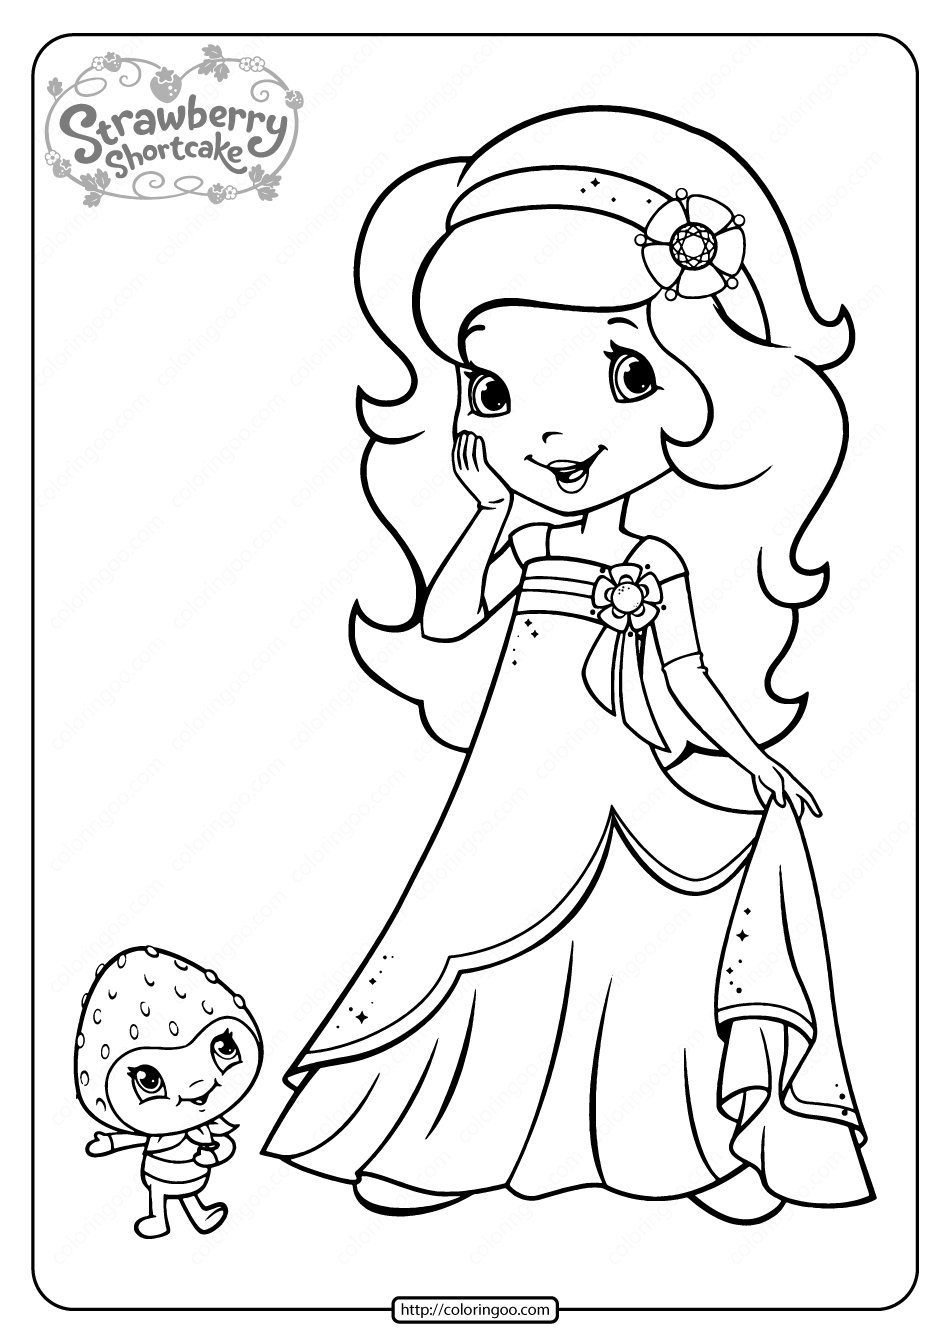 Free Printable Orange Blossom Coloring Page Strawberry Shortcake Coloring Pages Cartoon Coloring Pages Cute Coloring Pages